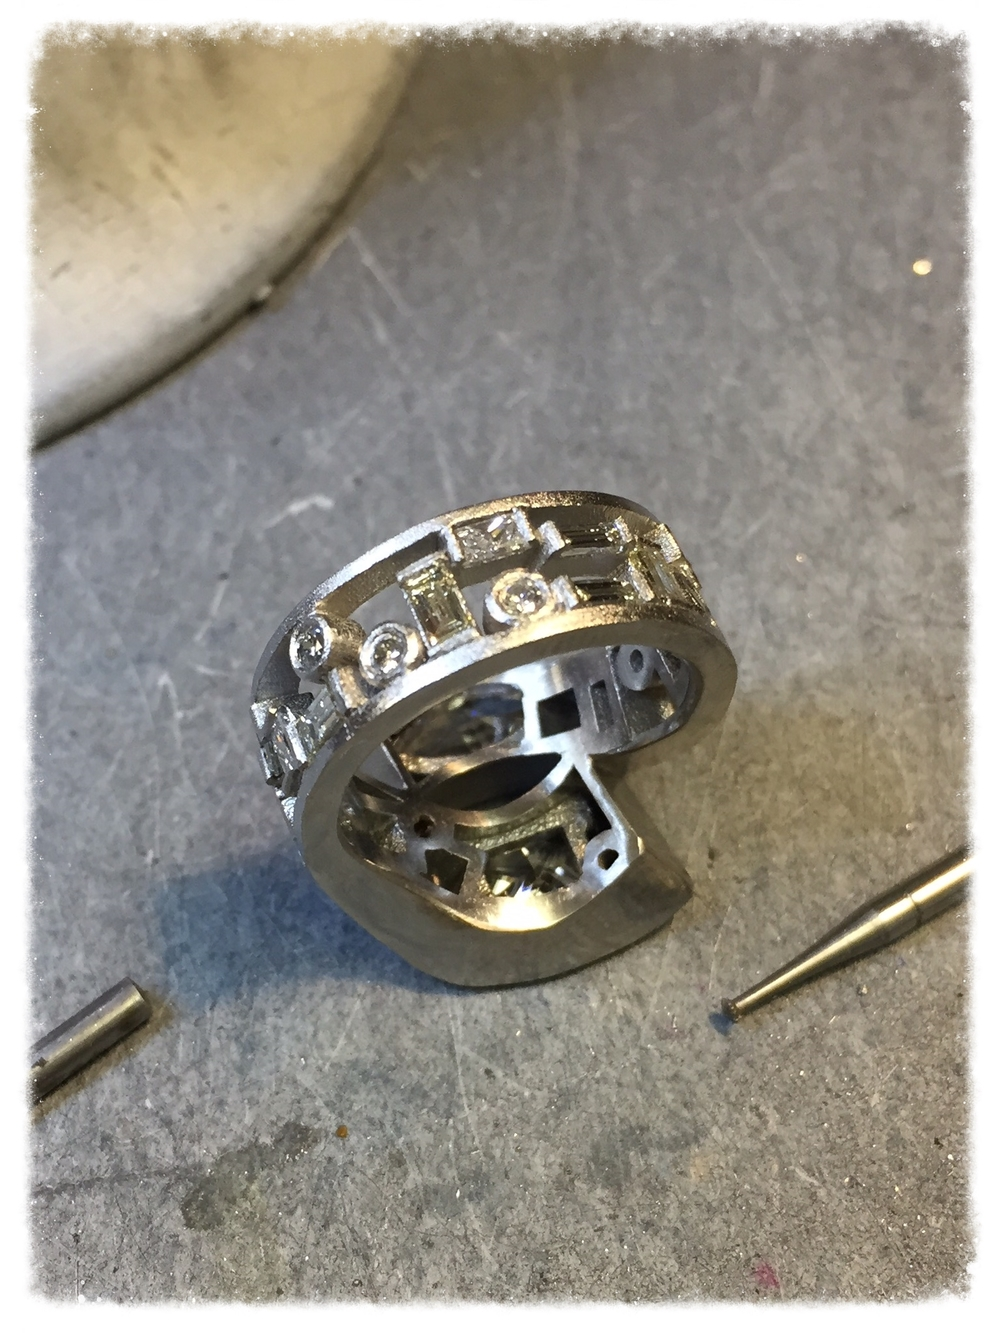 The custom ring is just about ready for its final polishing.